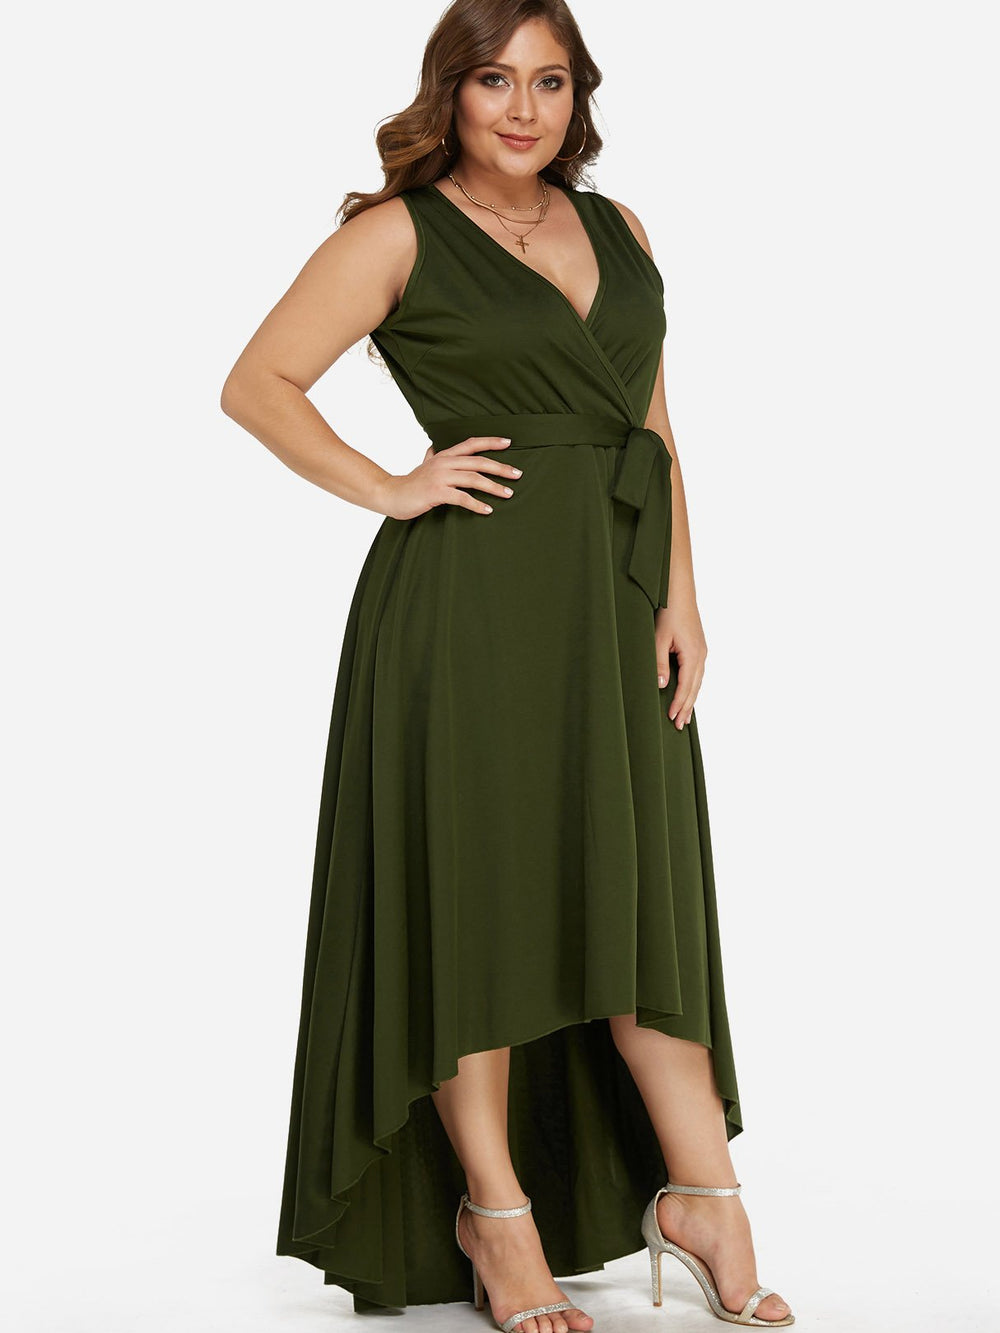 Ladies Army Green Plus Size Dresses